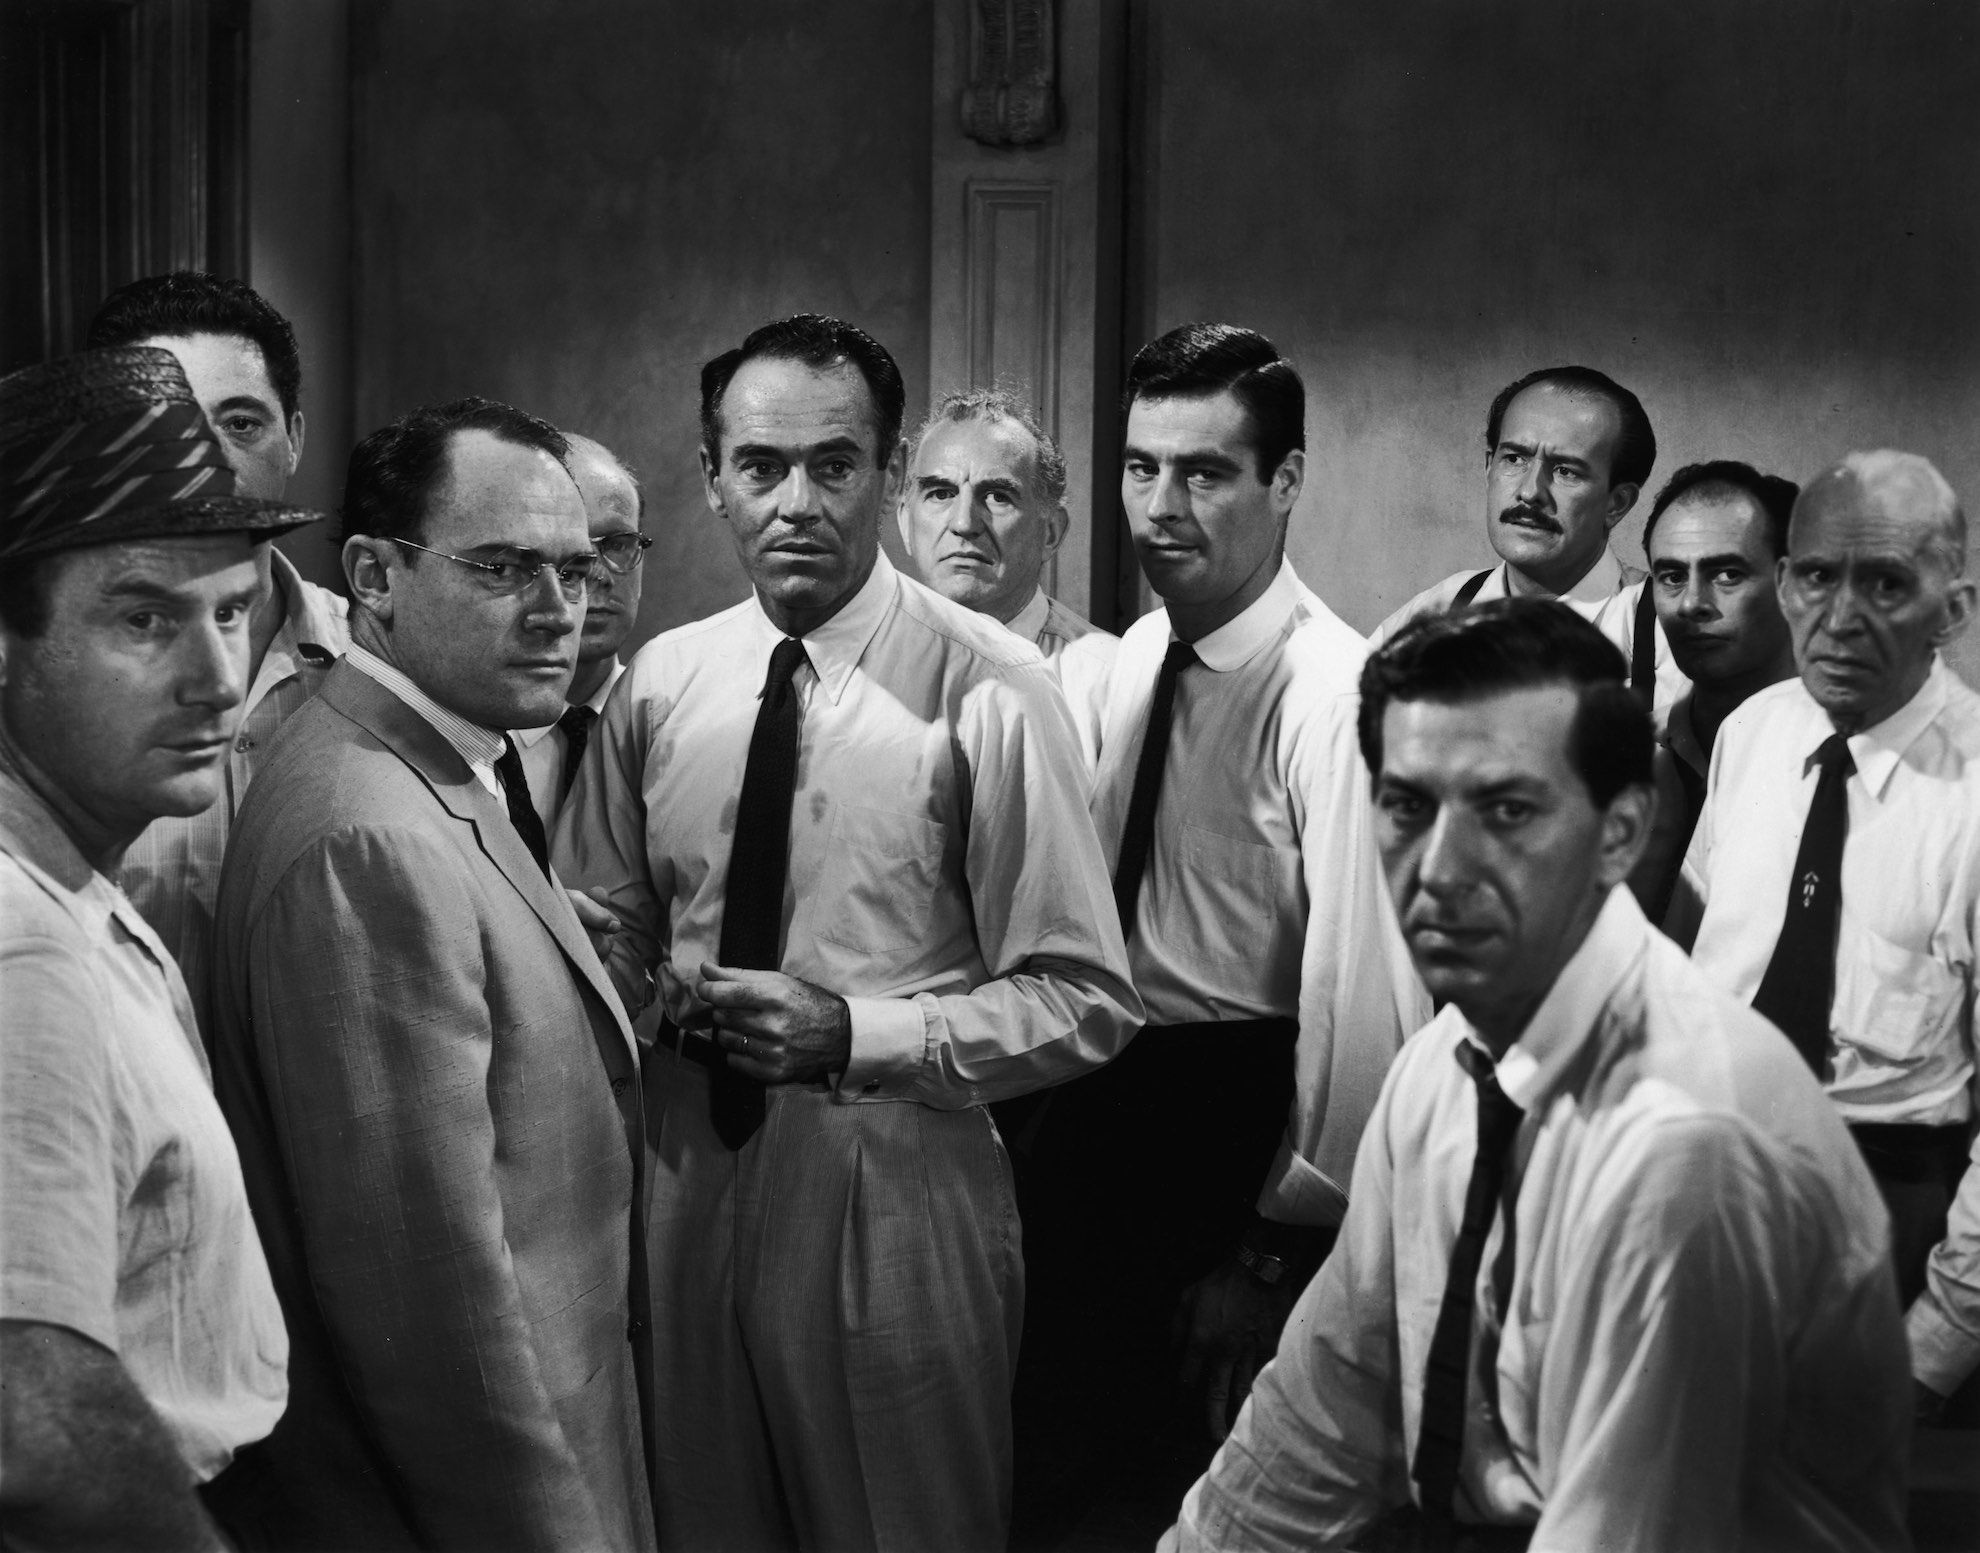 the united states jury system in the story 12 angry men by reginald rose